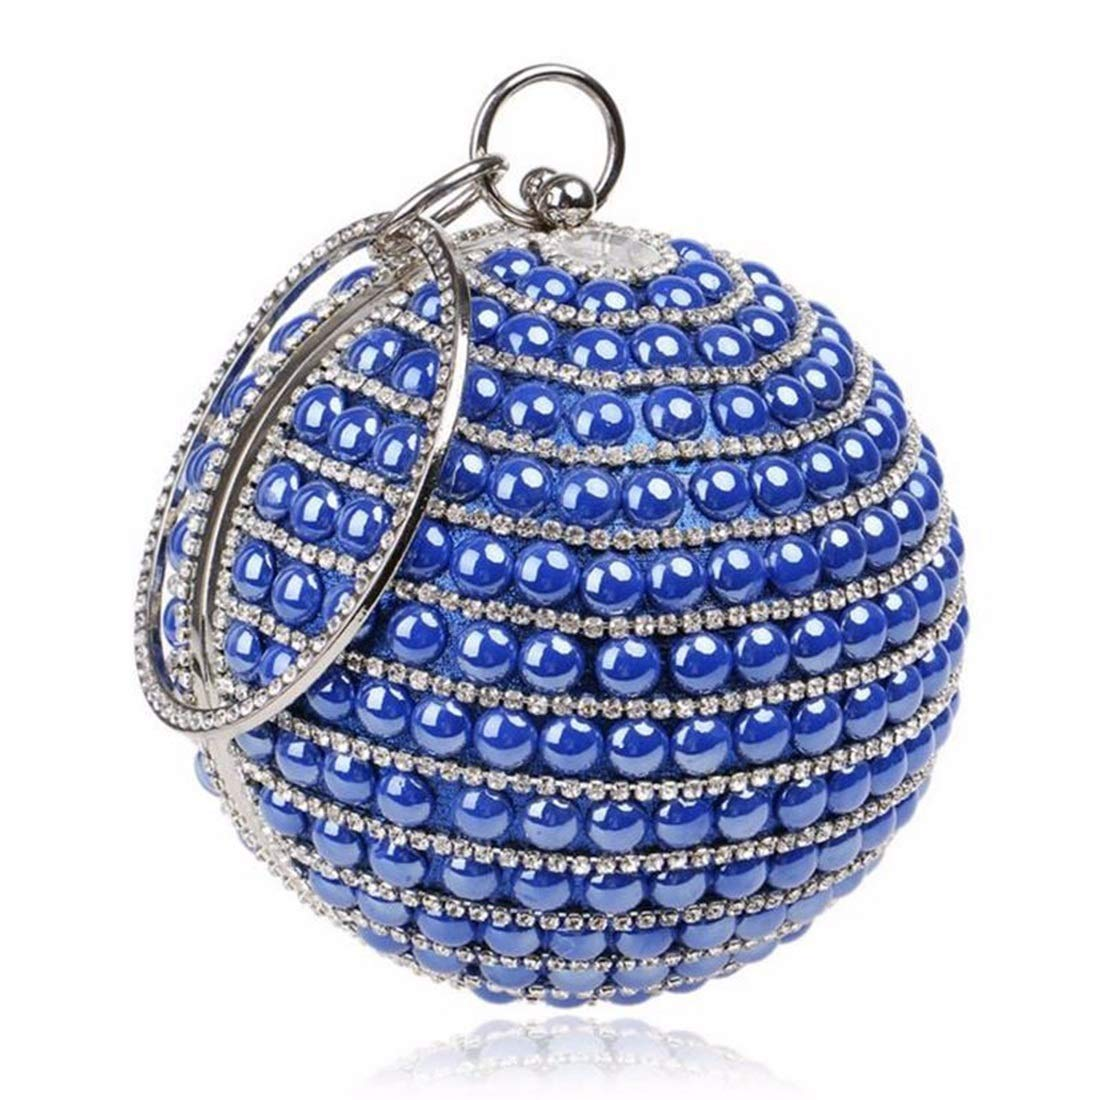 YUKILOCC Womens Rhinestone Handbag Wedding Purse Beaded Evening Bag Party Clutch